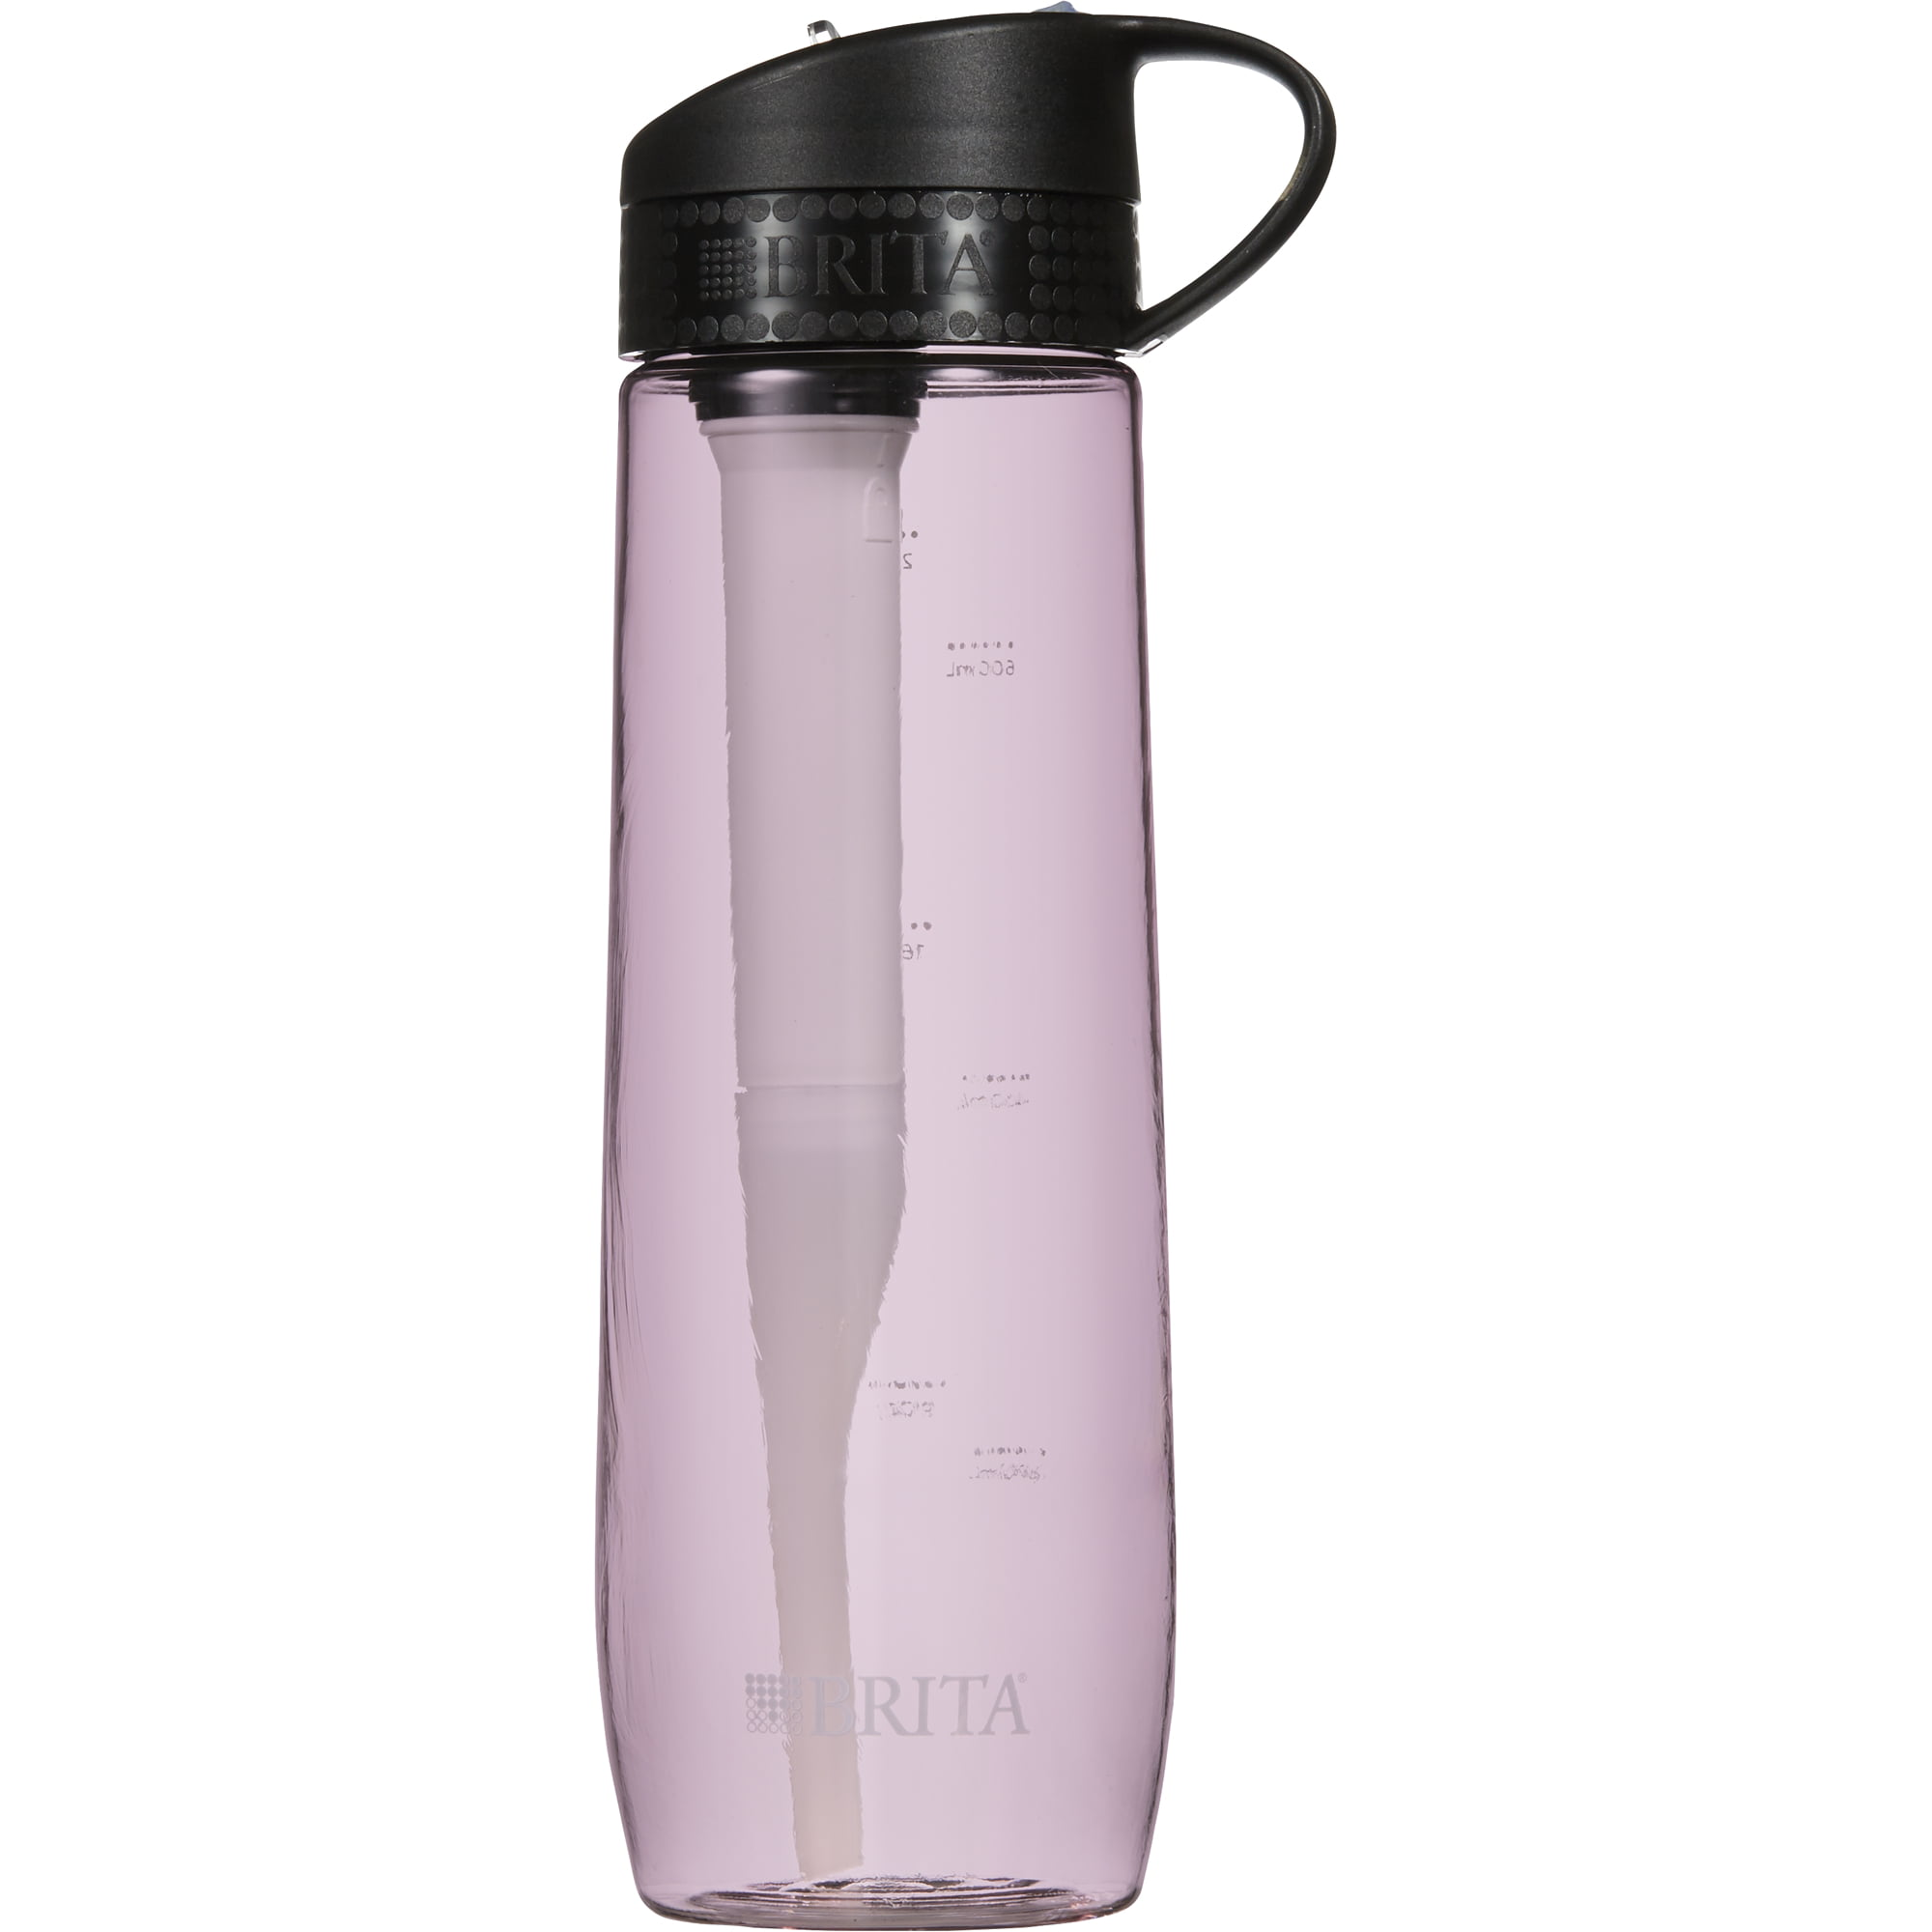 Brita Hard Sided Water Bottle with Filter 23.7 oz BPA Free Pink by The Clorox Company